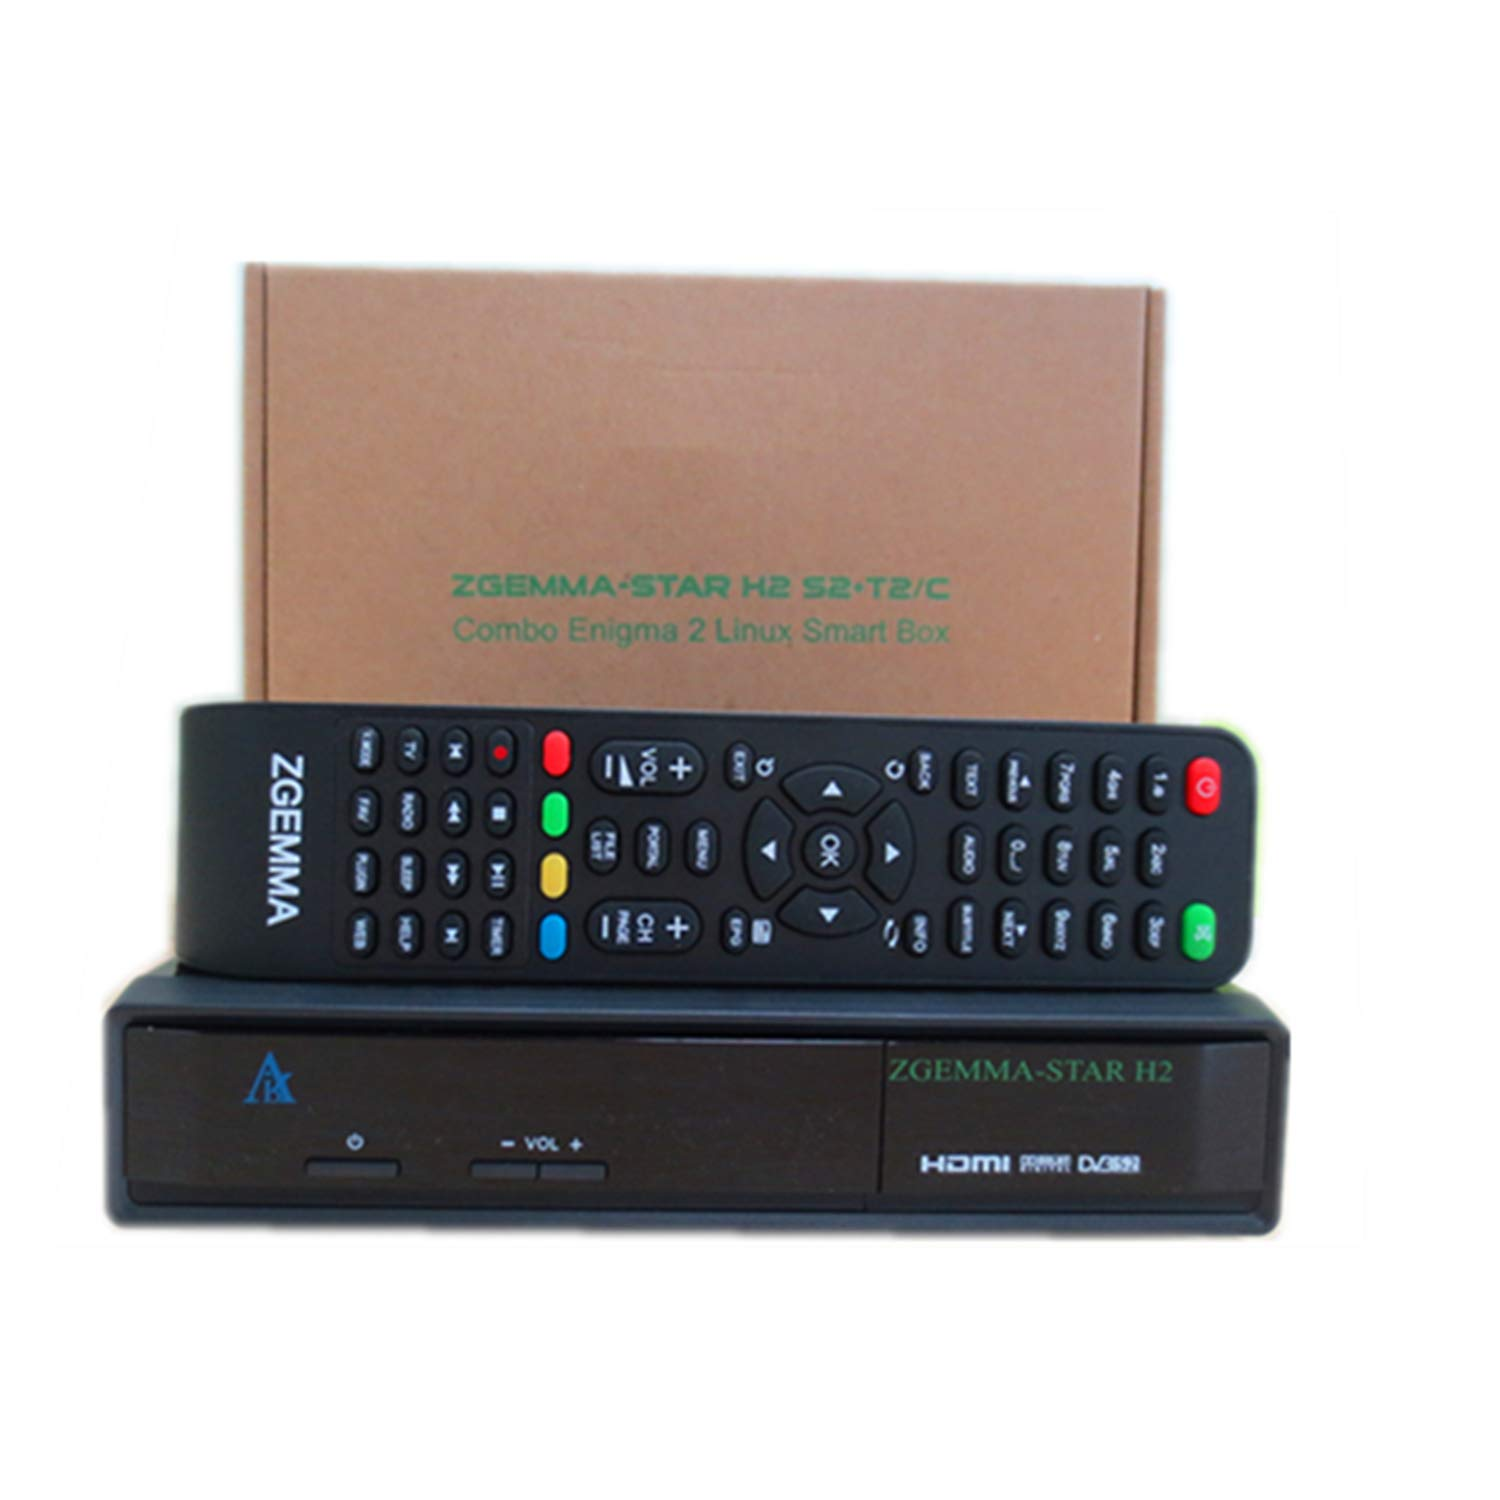 ZGEMMA-STAR H2 Enigma2 Linux OS DVB-S2+DVB-T2: Amazon co uk